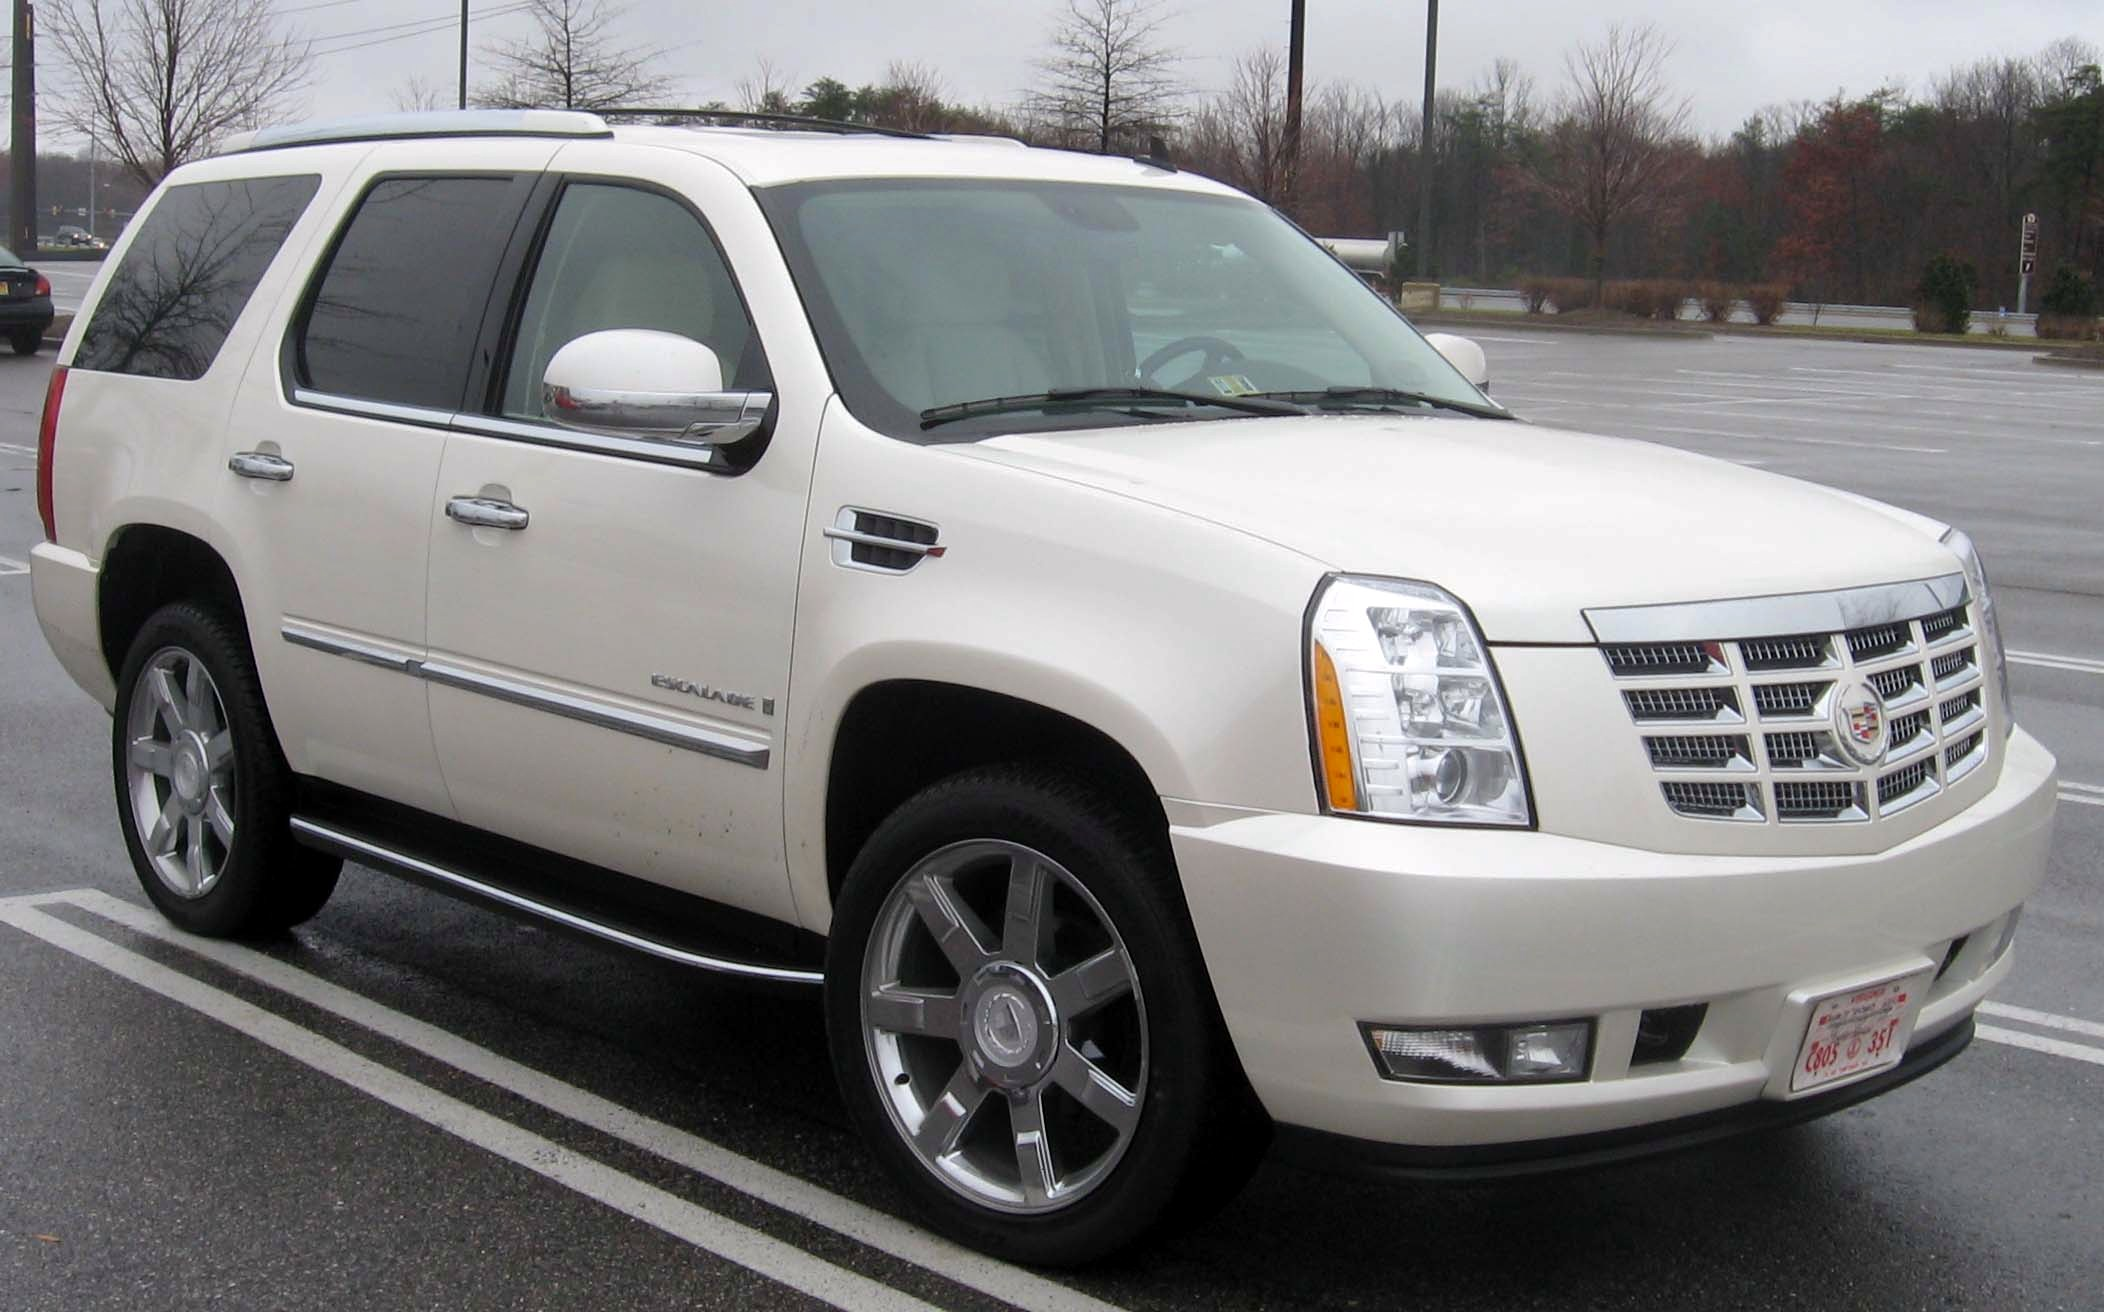 vehiclesearchresults photo dartmouth ns sale cadillac new escalade for vehicles vehicle in